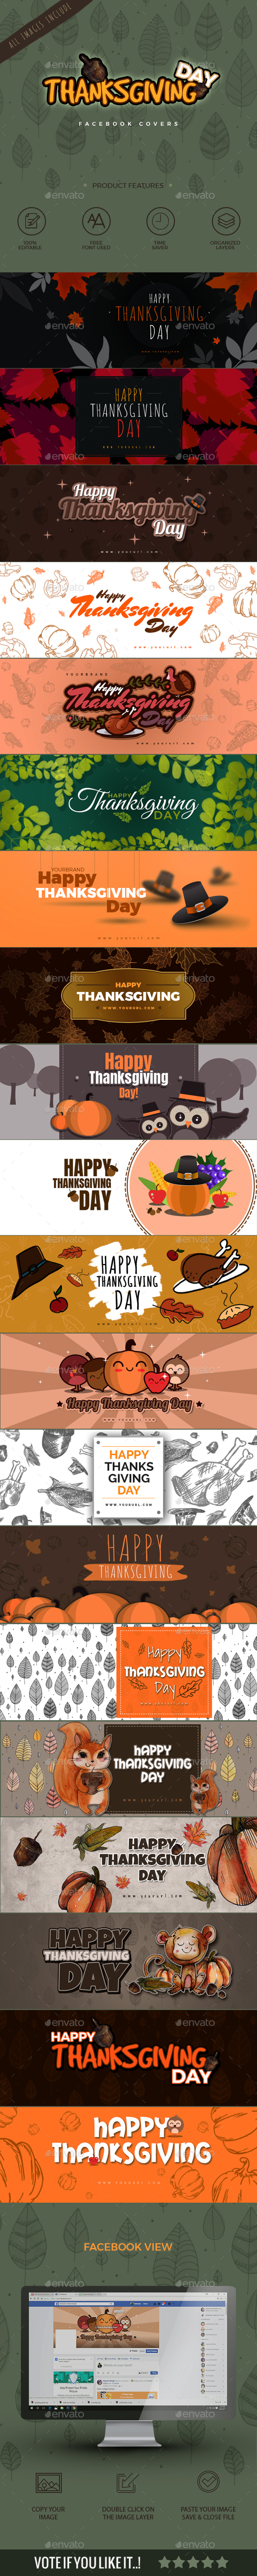 20 Thanksgiving Facebook Timeline - Facebook Timeline Covers Social Media